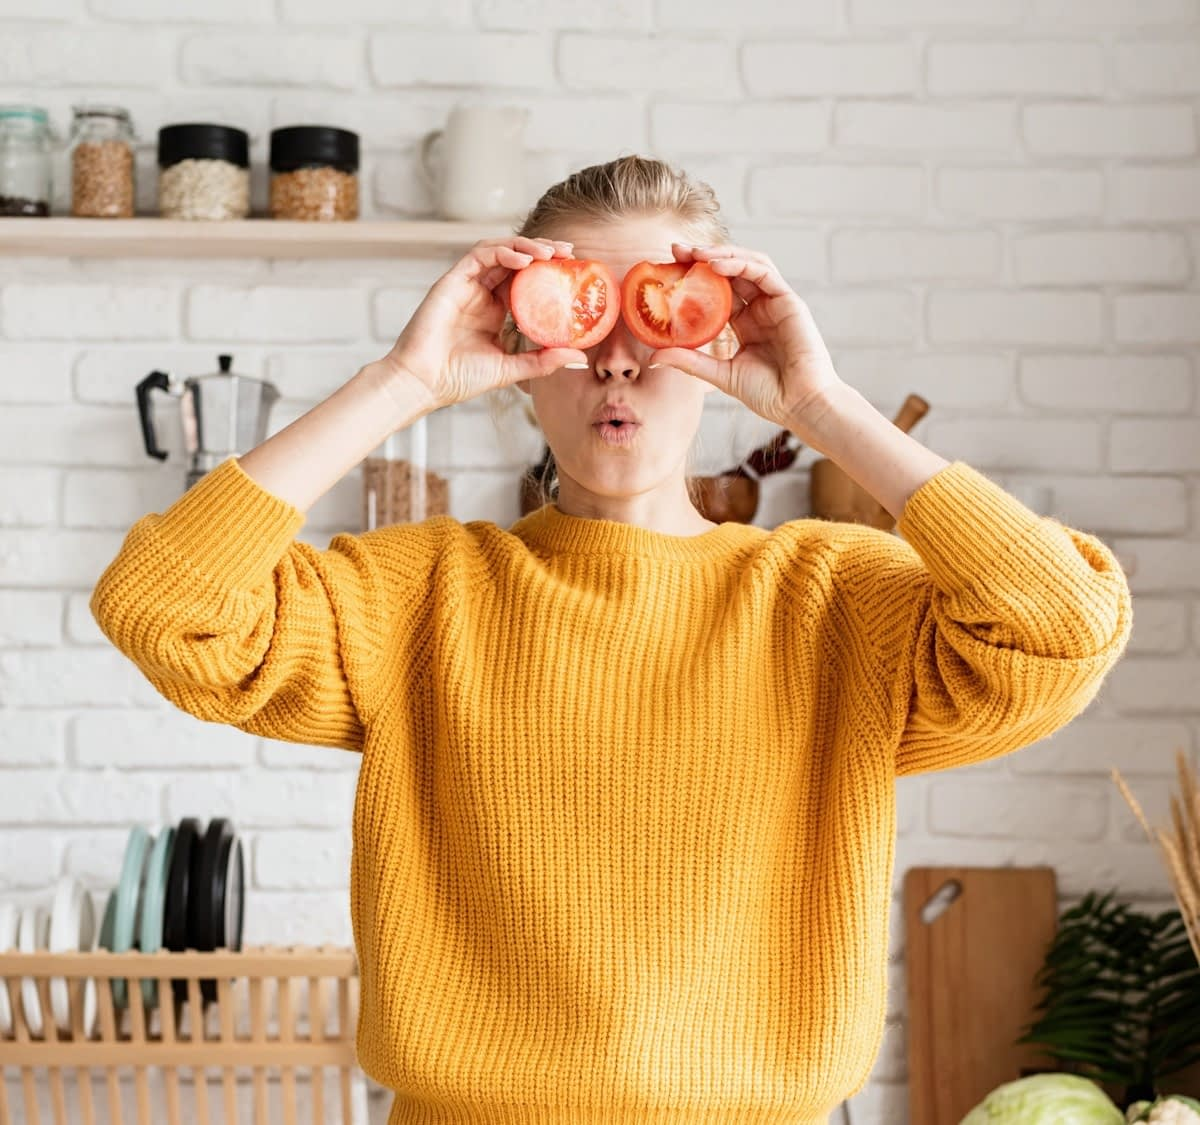 A woman in a yellow sweater stands in her kitchen, holding two tomato halves over her eyes